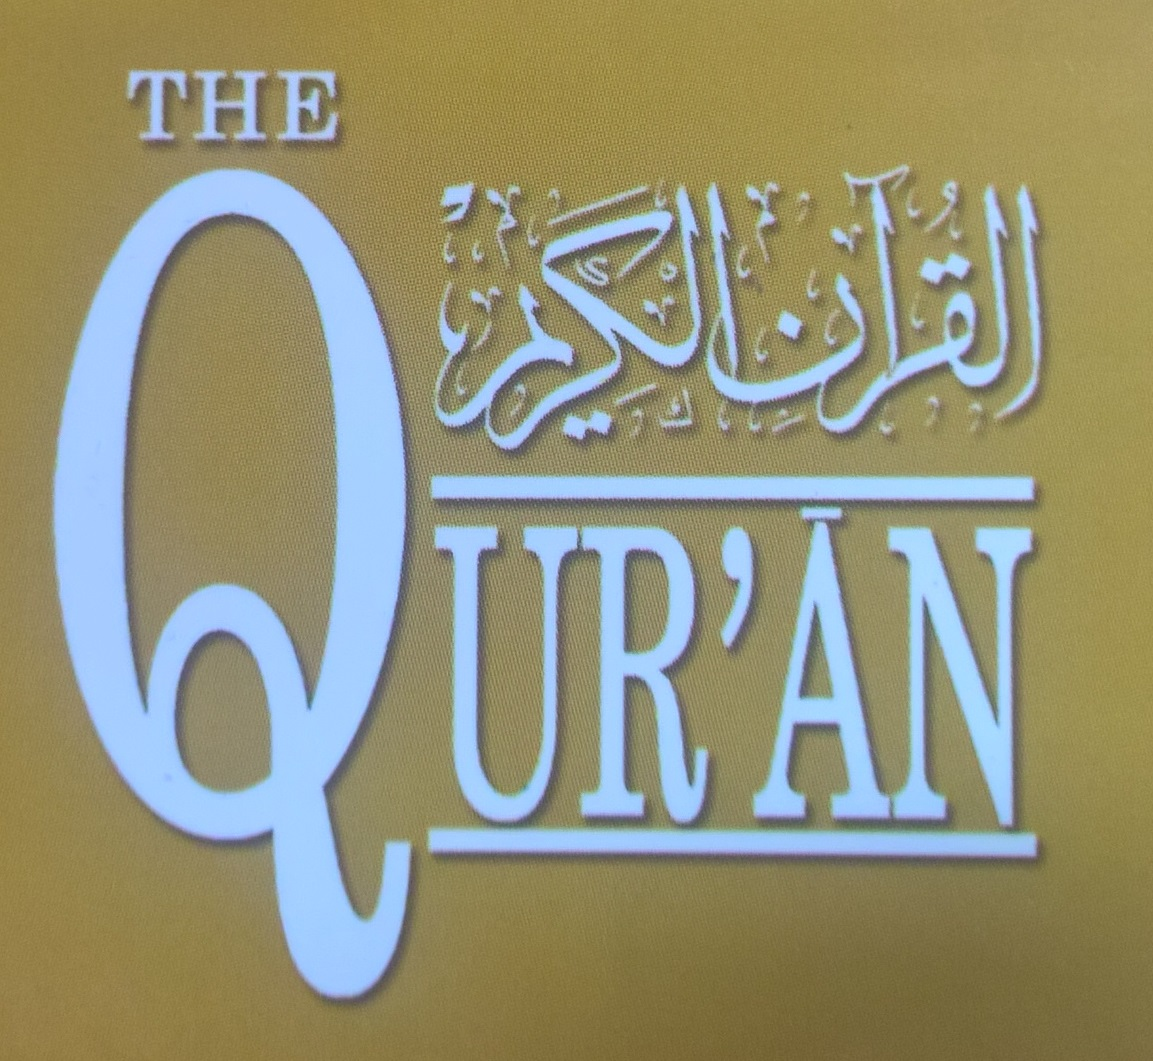 Quran 100 year anniversary, call to correct scribal errors in the Quran